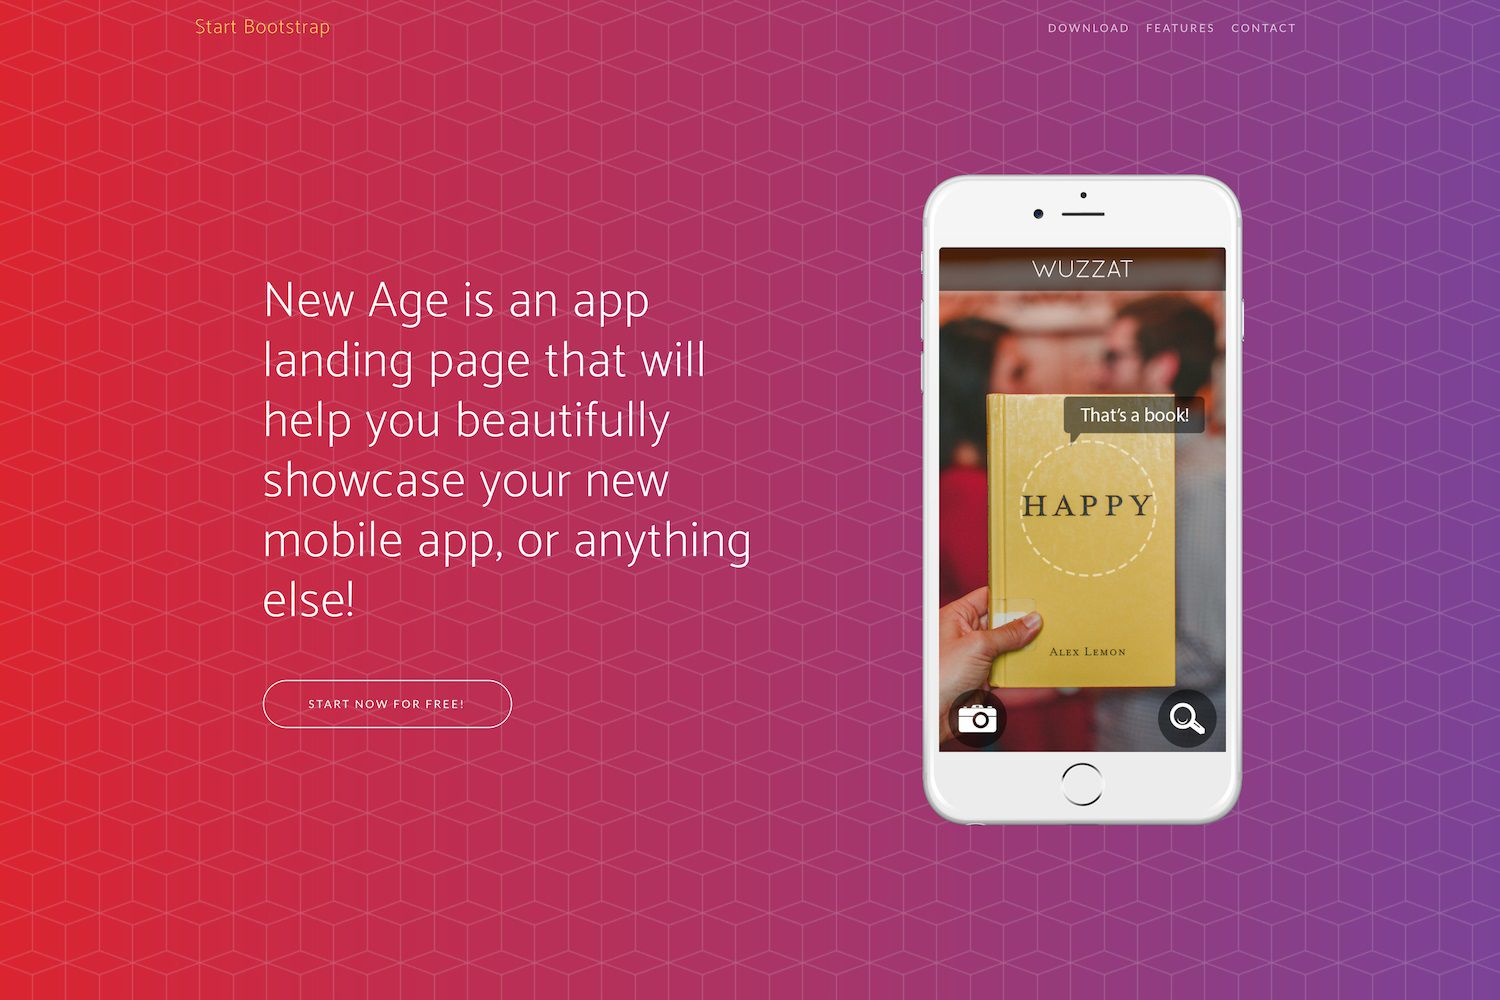 007 Best Bootstrap Mobile App Template High Resolution  Html5 Form 4Full